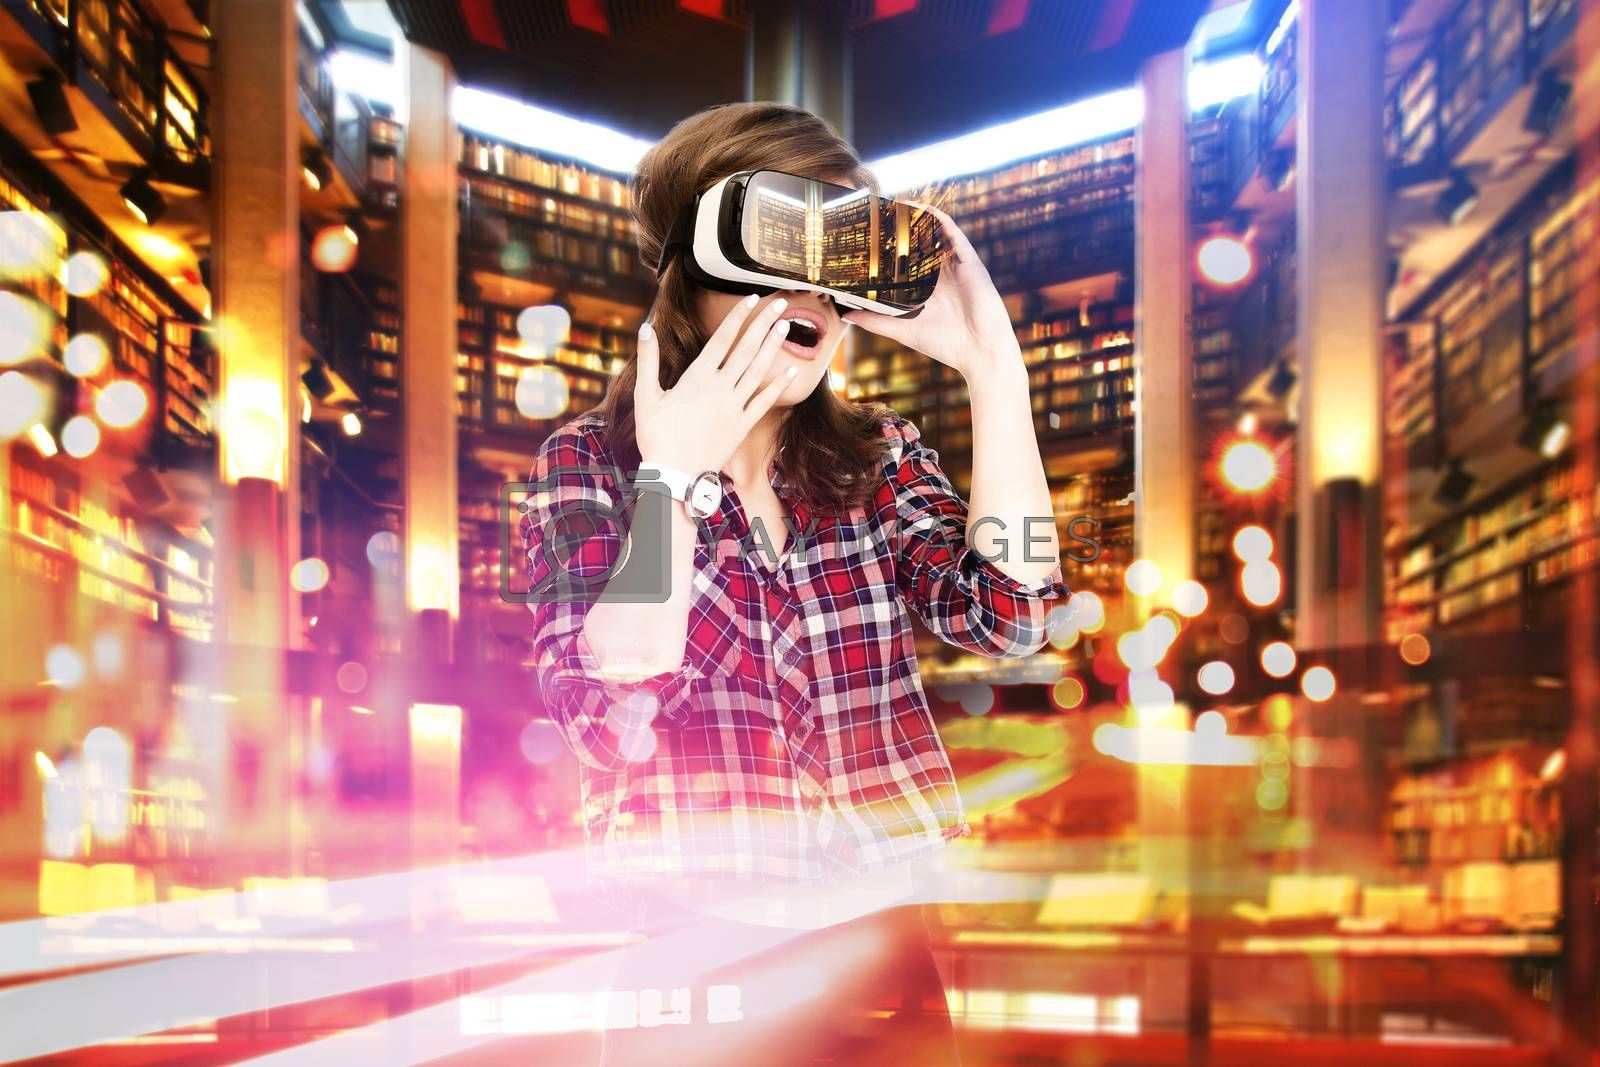 Double exposure, young girl getting experience VR headset, is using augmented reality glasses, being in a virtual actuality. In the library